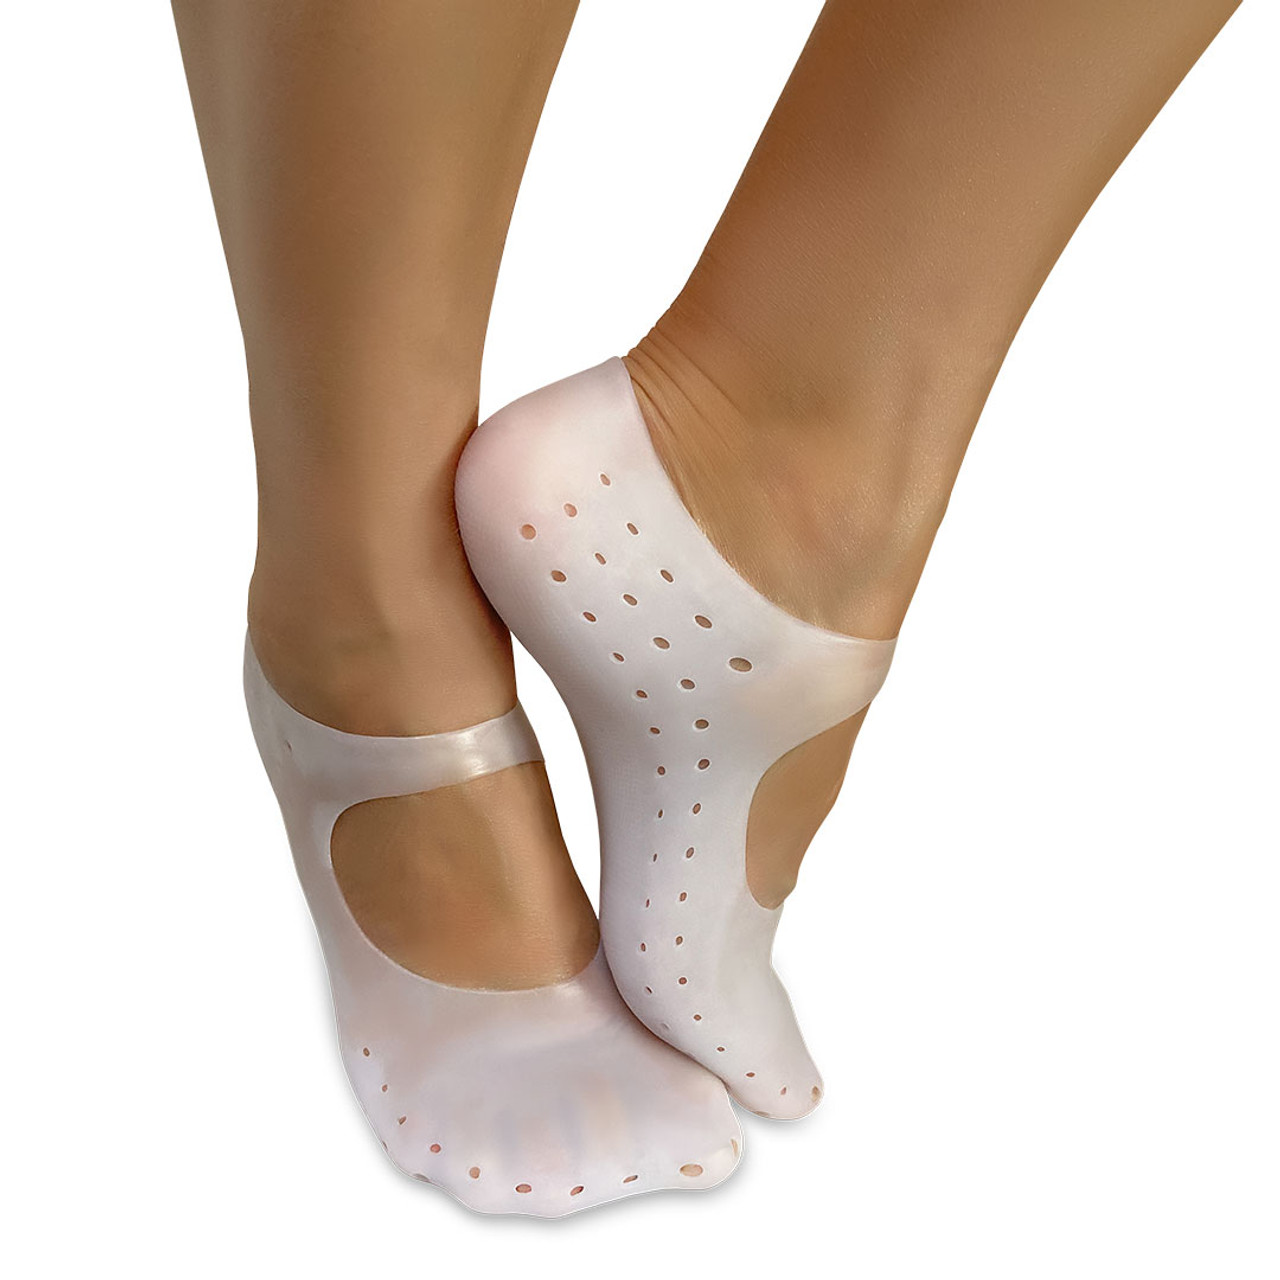 Silicone Socks for Softer, Smoother Feet